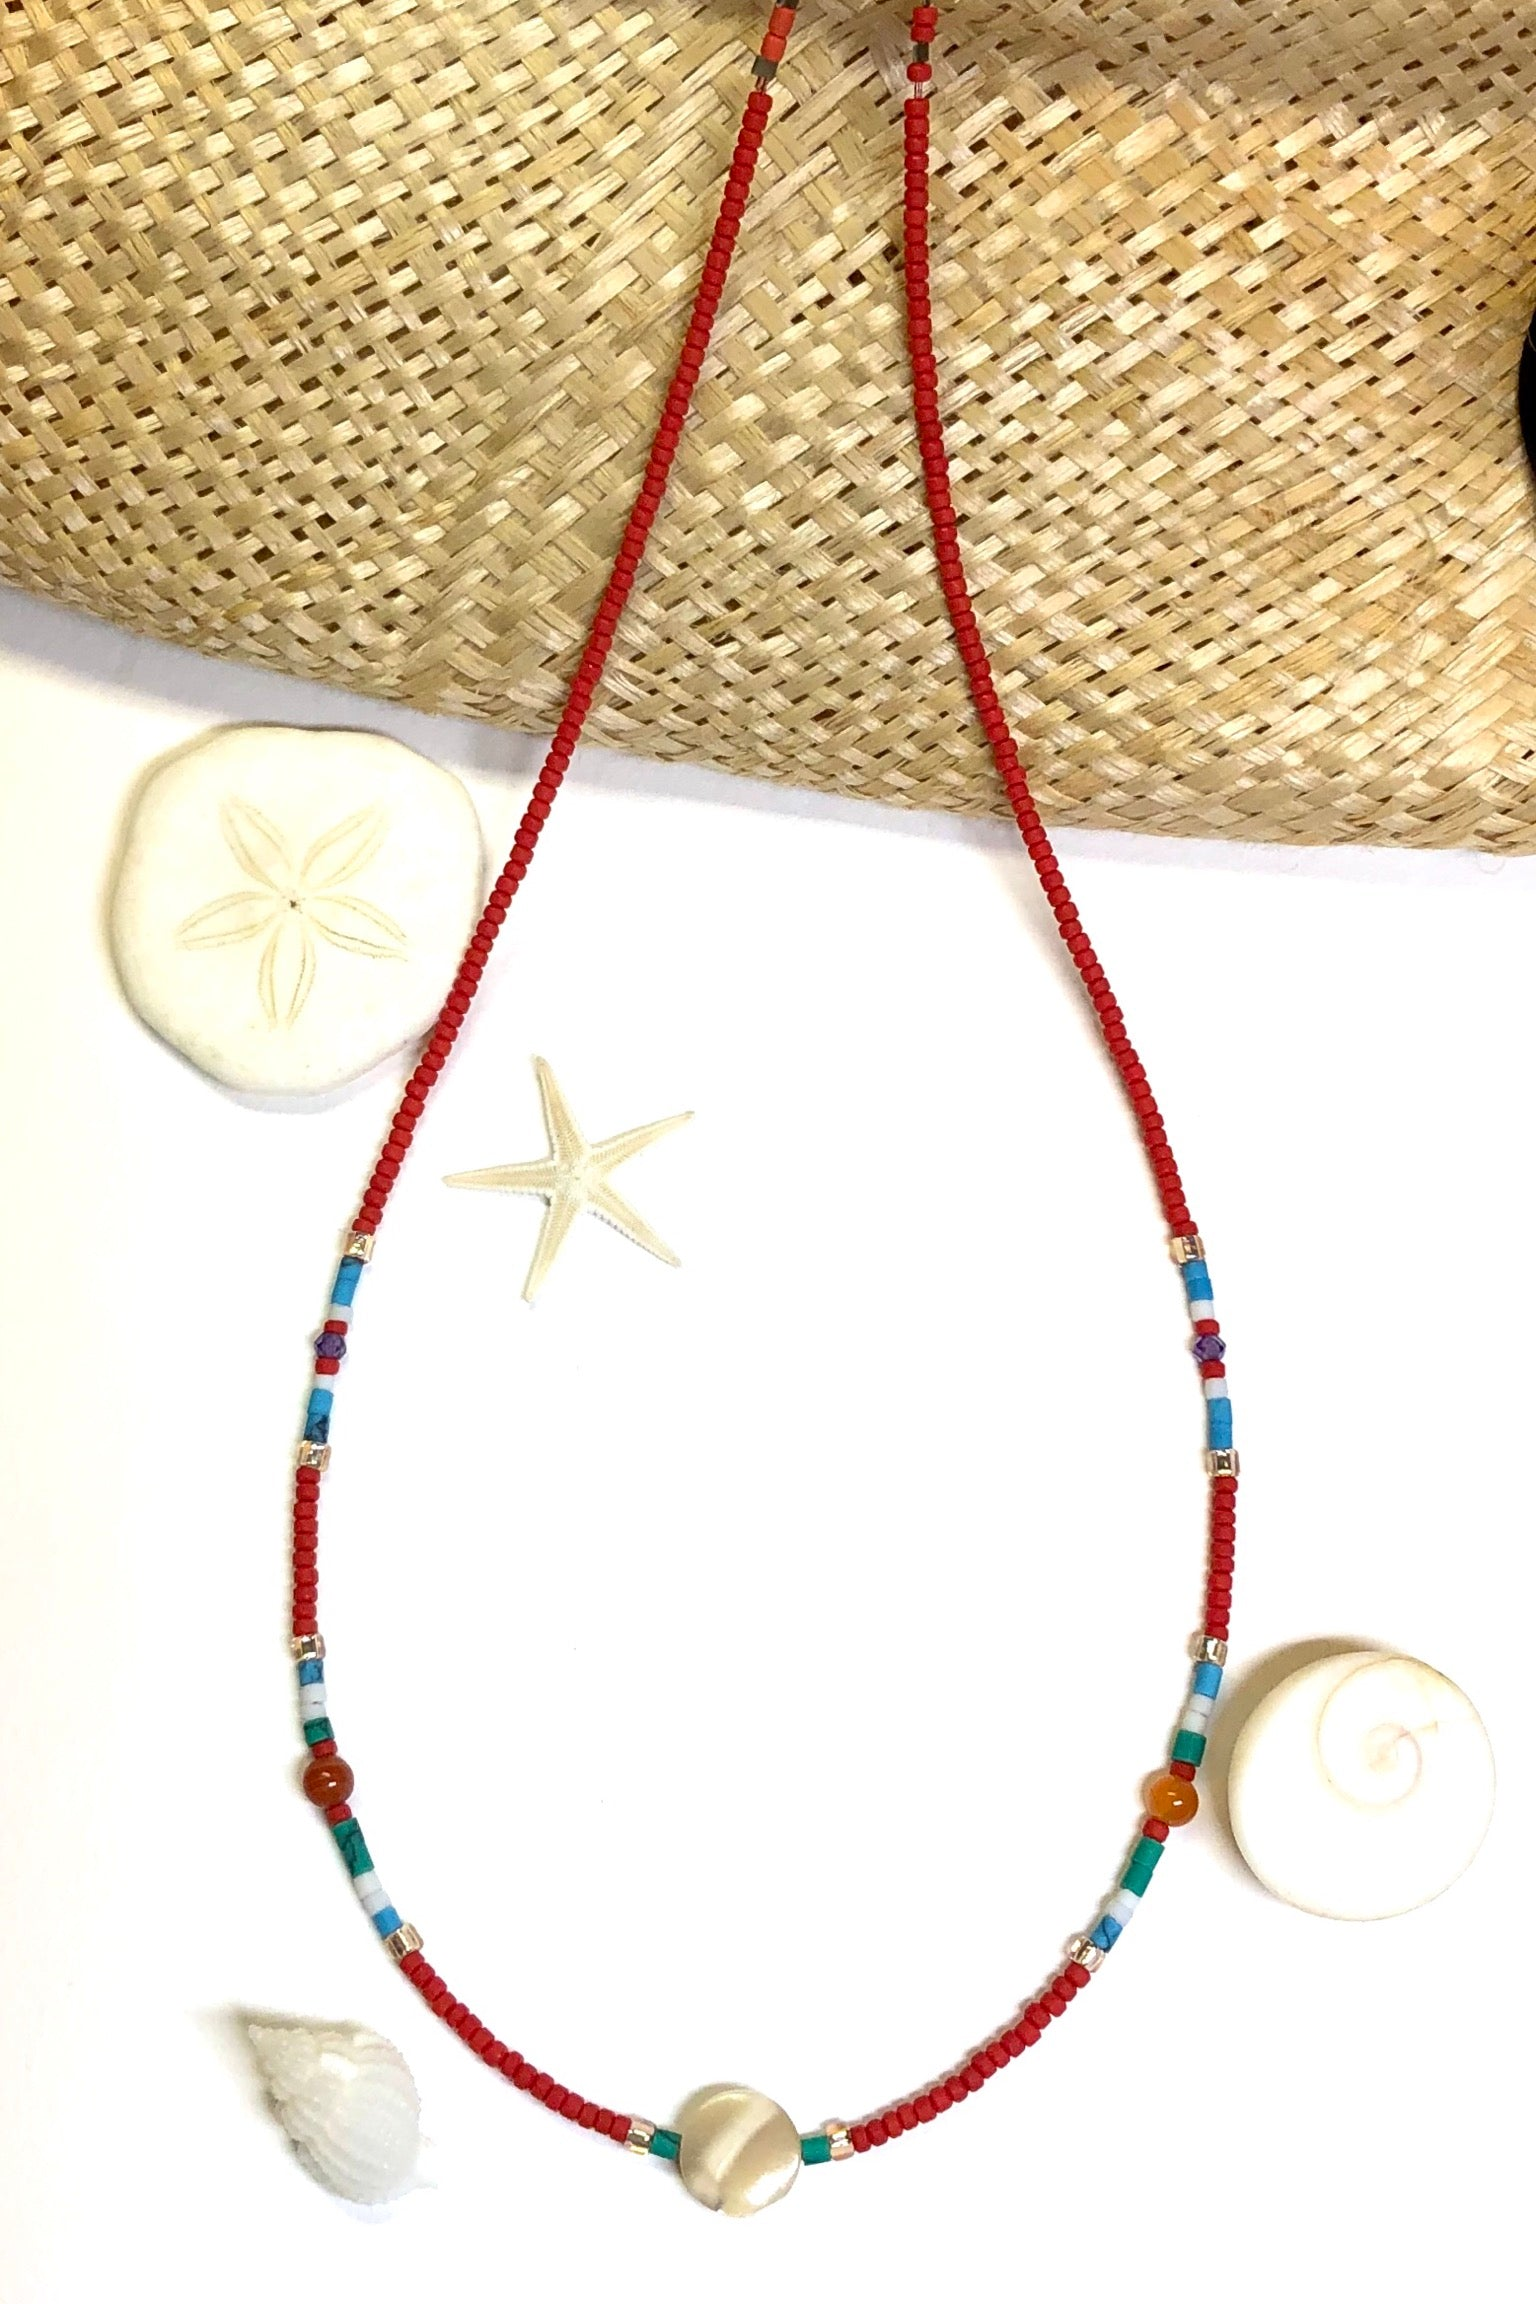 Necklace Cay Island Green is exclusive and handmade featuring 45cm in length and tiny Afghan seed beads, Mother of Pearl, glass and carnelian stone.